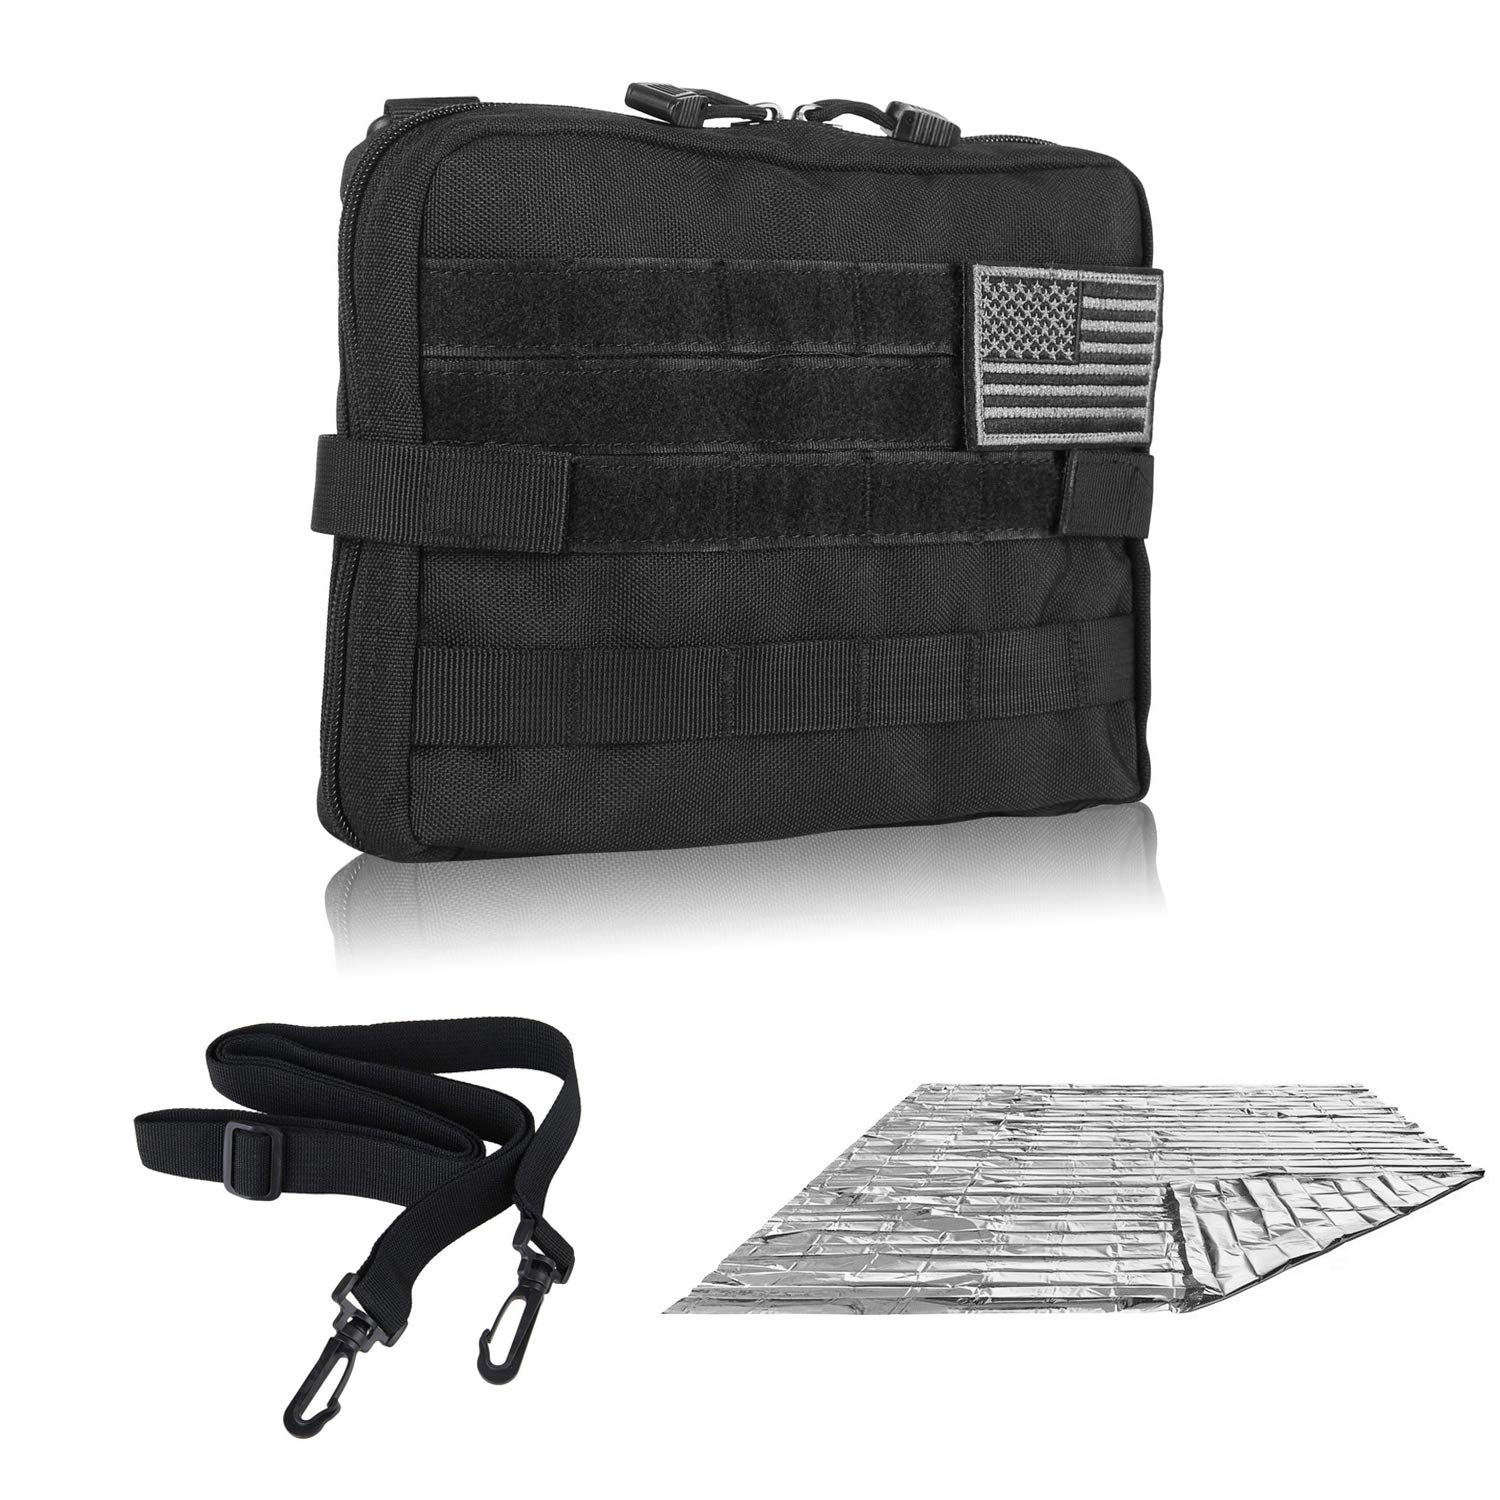 DELSWIN Tactical Molle Pouch - Medical ETM Utility Bag EDC Organizer Admin Pouch Tool Bag with Adjustable Strap & Emergency Blanket (Black)